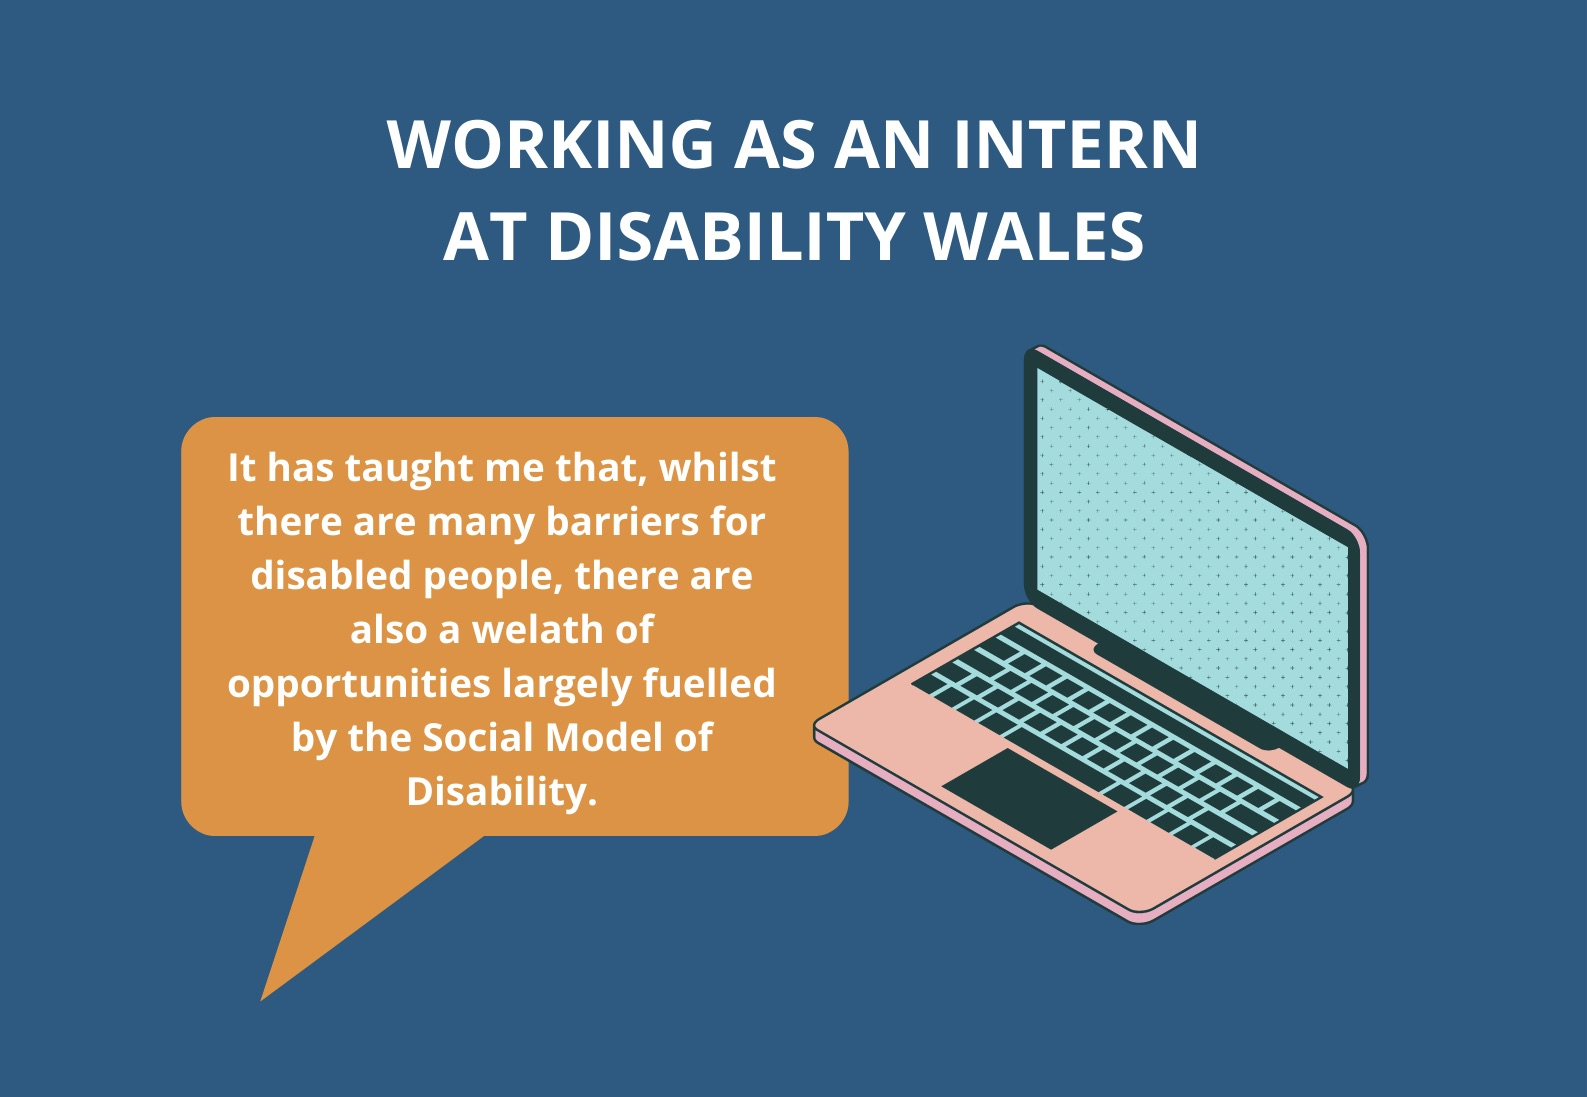 White text on a blue/green background that reads: Working as an intern at Disability Wales. There is an orange speech bubble underneath the title with white text in it that reads: It has taught me that, whilst there are many barriers for disabled people, there are also a wealth of opportunities largely fuelled by the Social Model of disability.